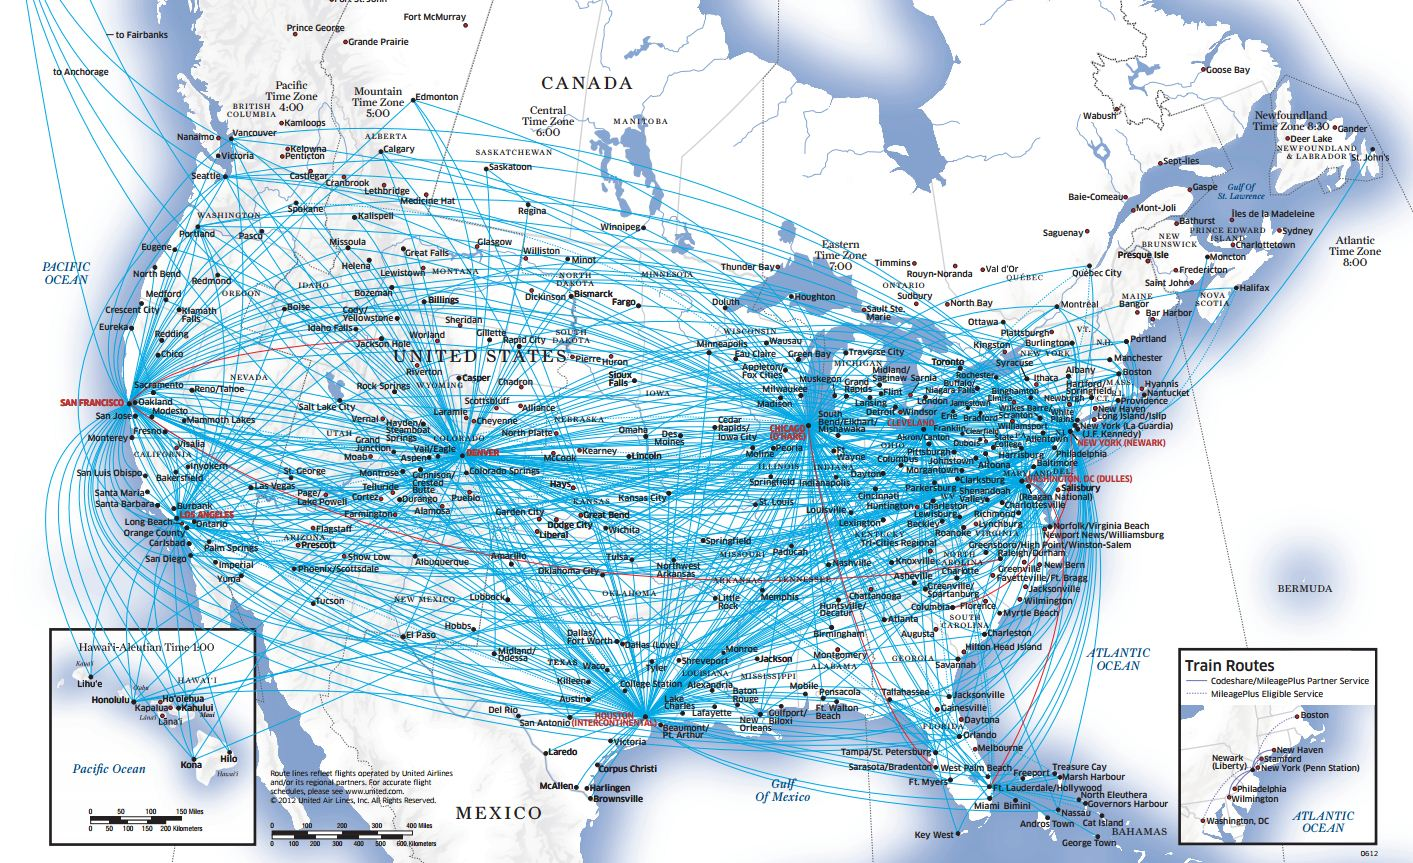 My Travel Pass Airline Route Maps